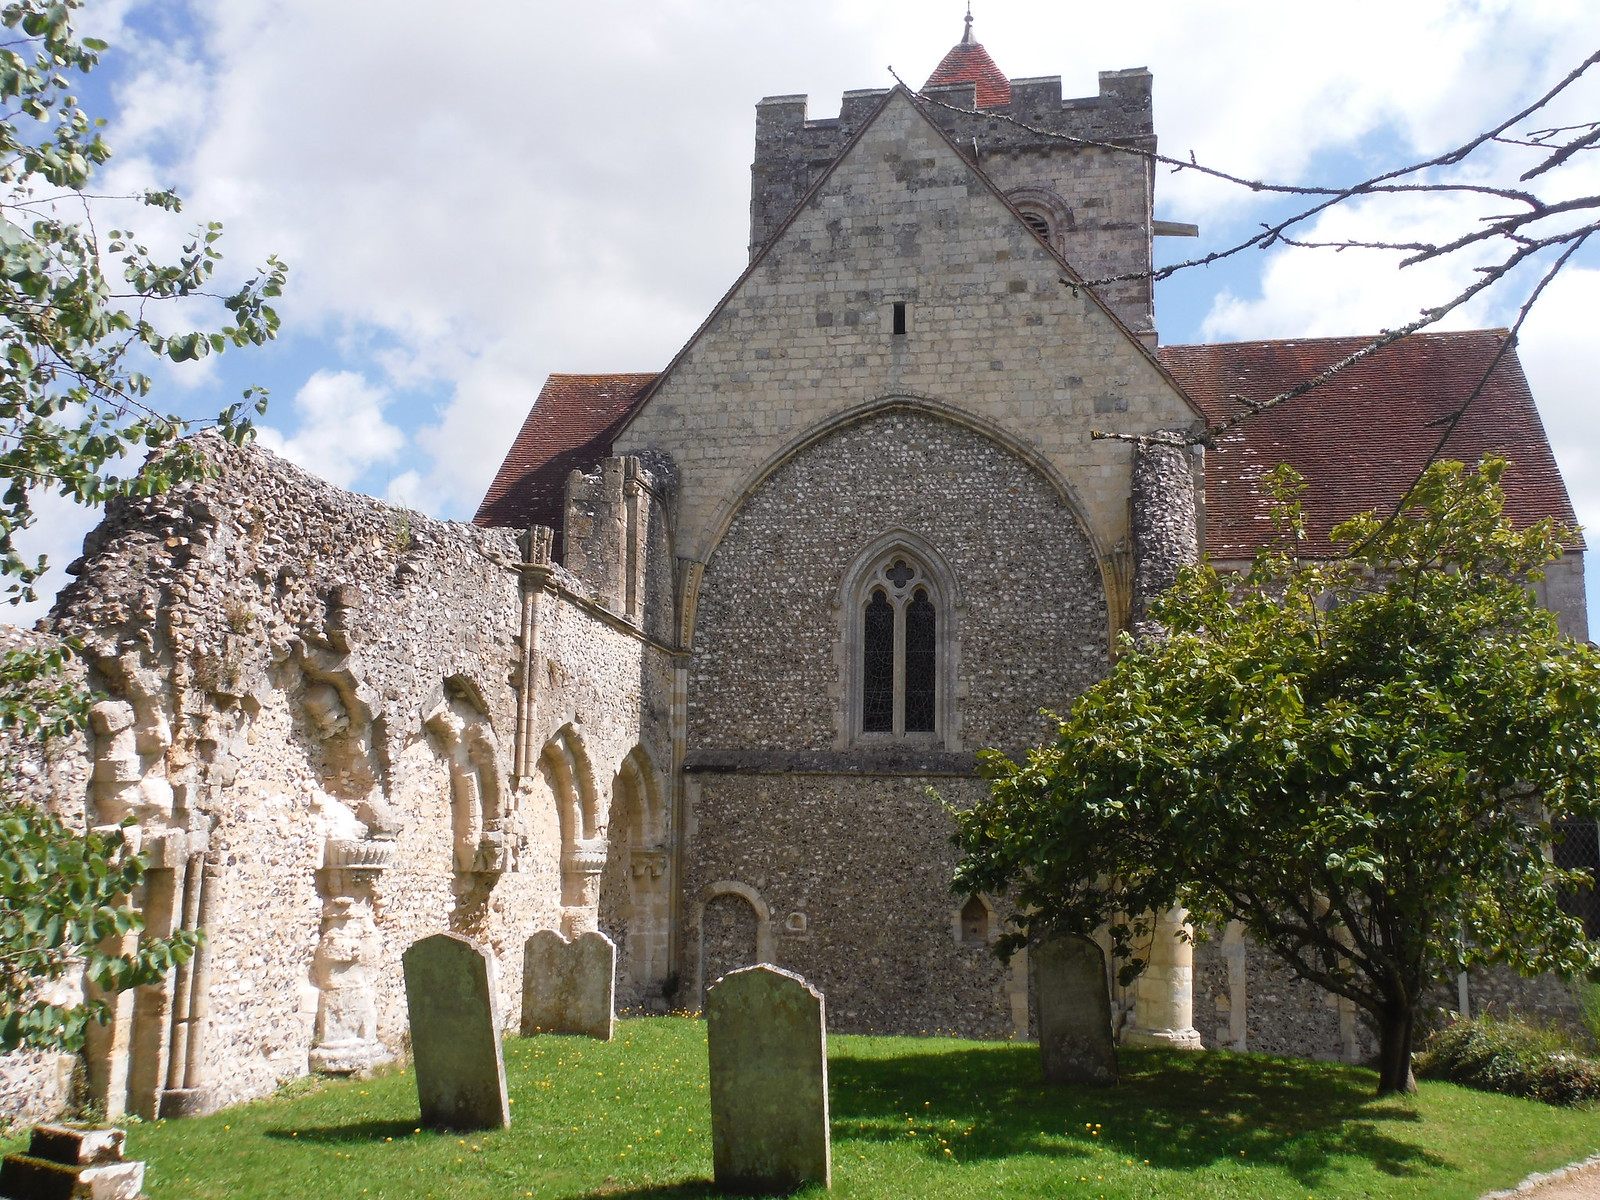 Church of St. Mary and St. Blaise, incl. Cloister remains of Benedictine Priory SWC Walk 239 Halnaker to Chichester via Cass Sculpture Park and Goodwood (Boxgrove Priory out-and-back)